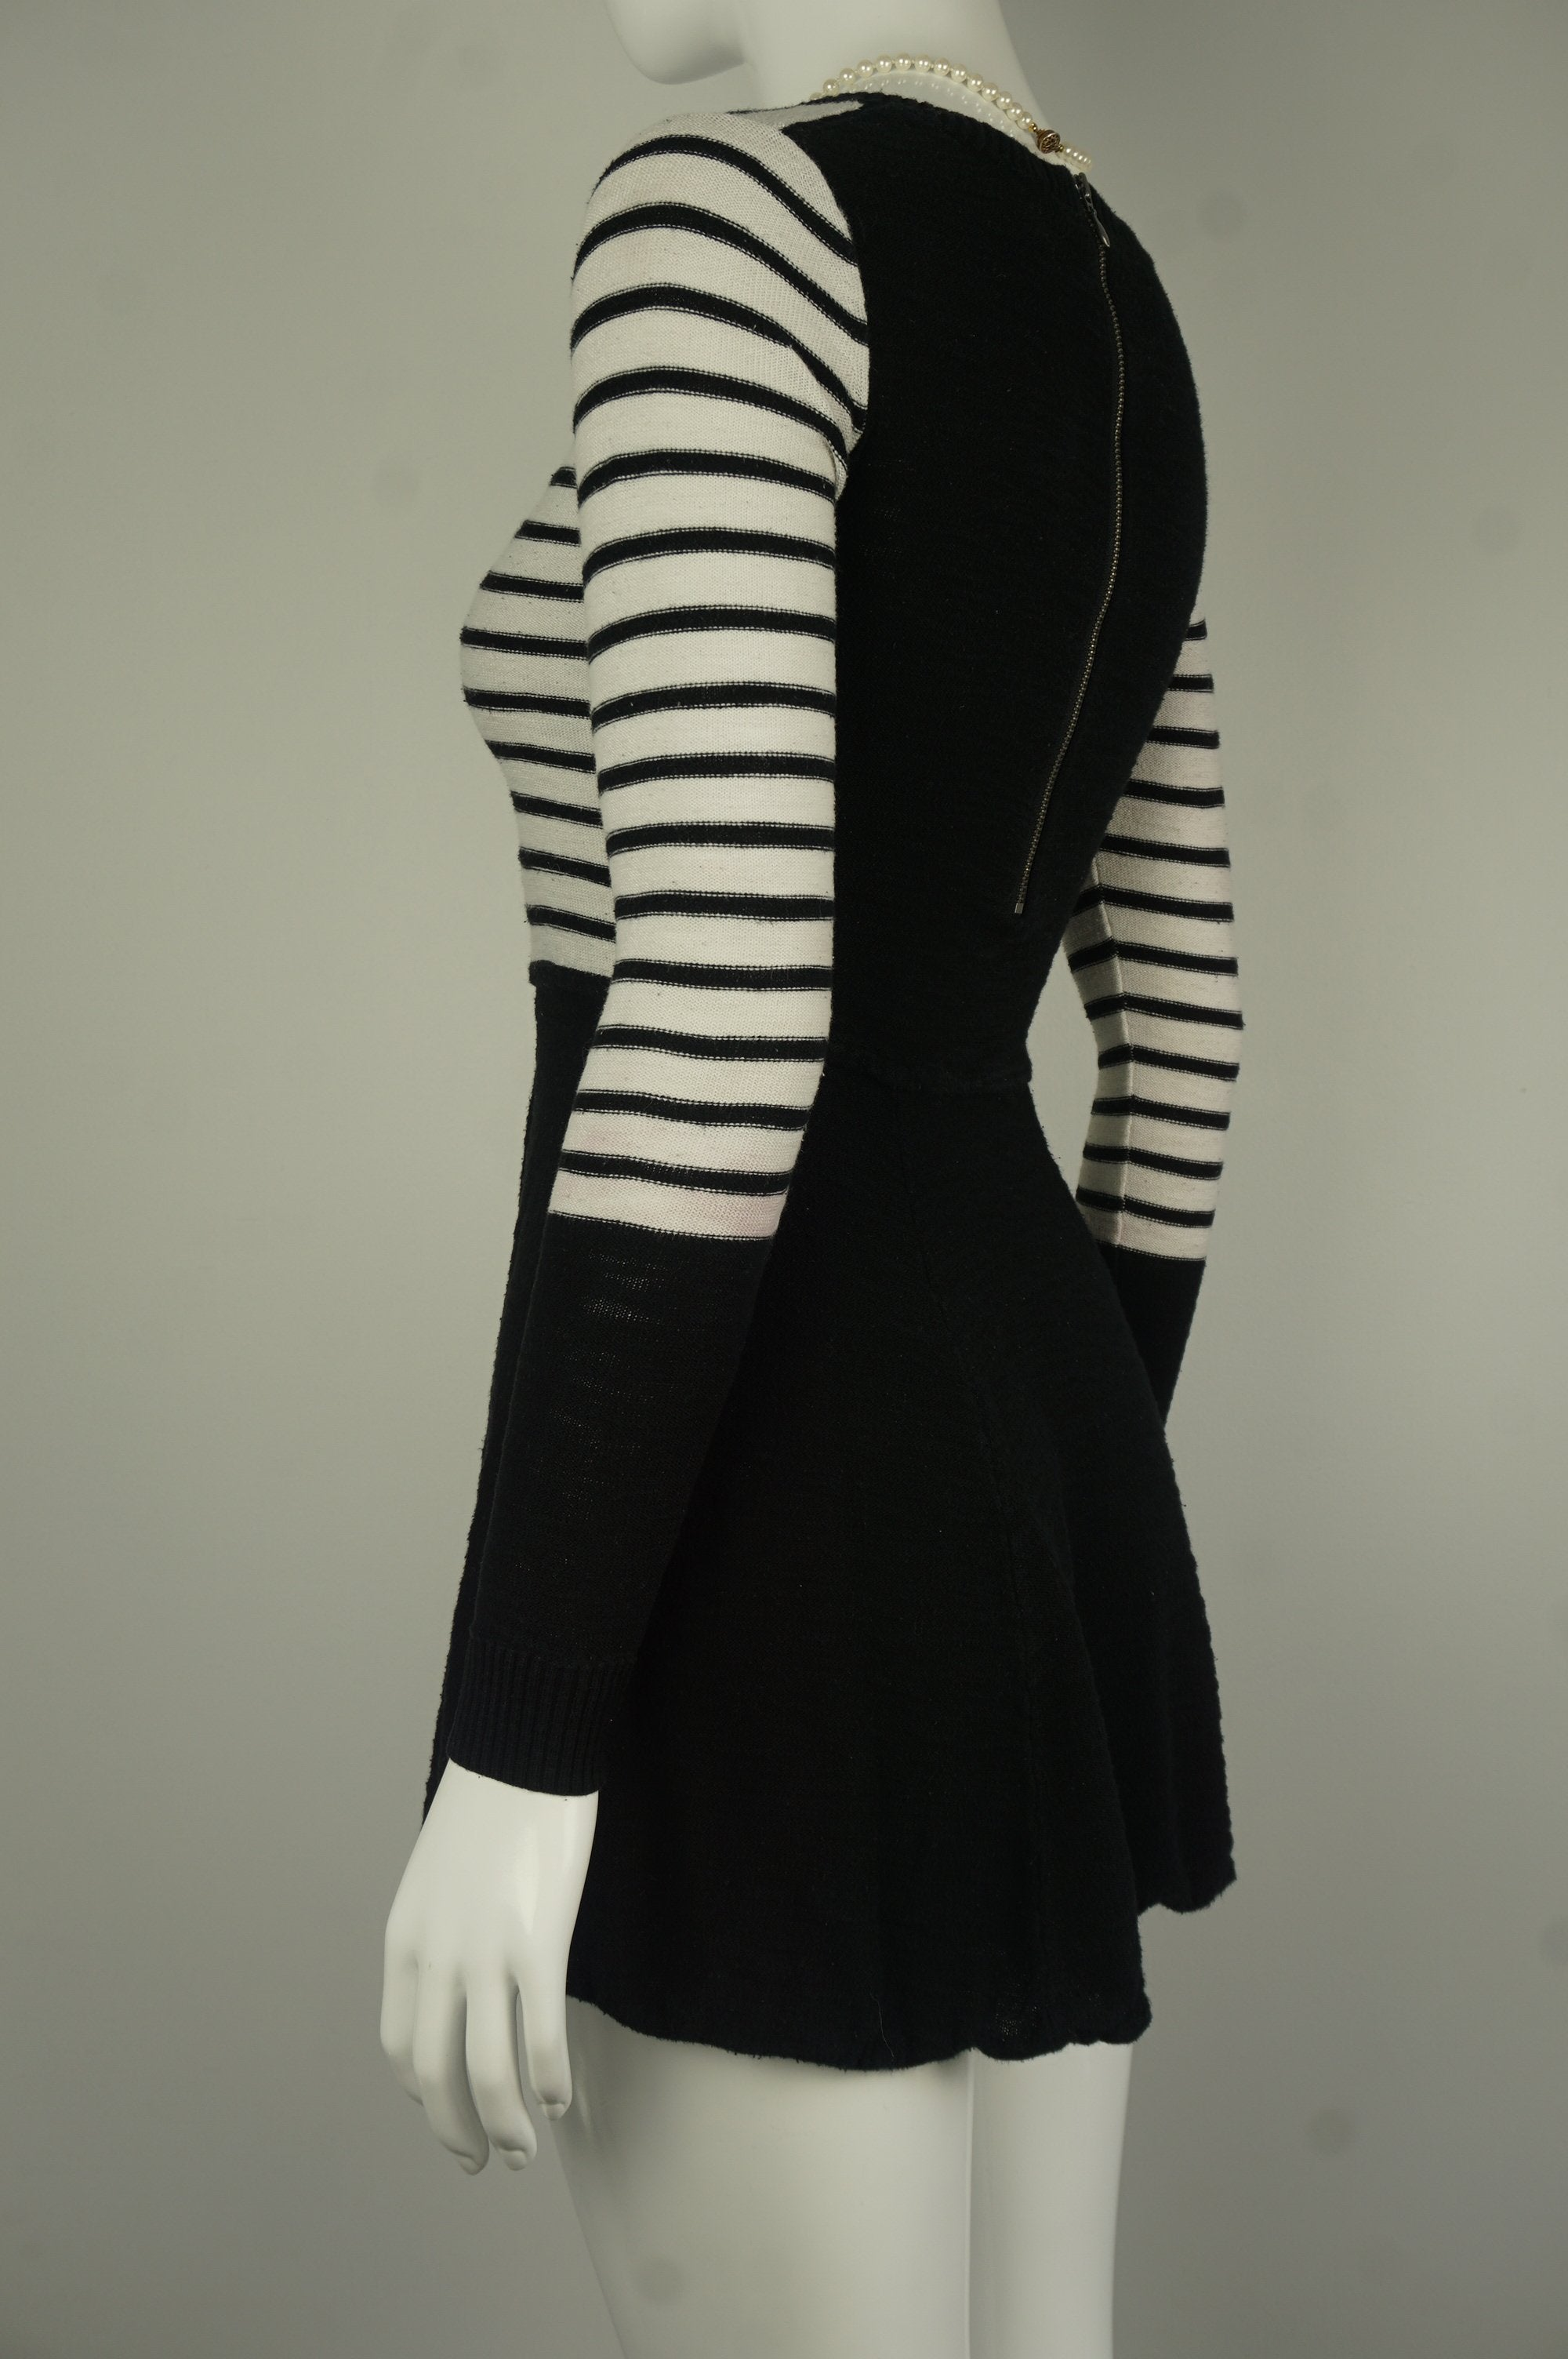 Express Zipper Back Black and White Striped Flare Dress with Long Sleeves, Stripes go with everything and they definitely work well with this black and white business casual winter dress. , Black, White, Warm and stretchy material, women's Dresses & Skirts, women's Black, White Dresses & Skirts, Express women's Dresses & Skirts, Black and White striped flare dress, long sleeves mini dress, warm winter dress